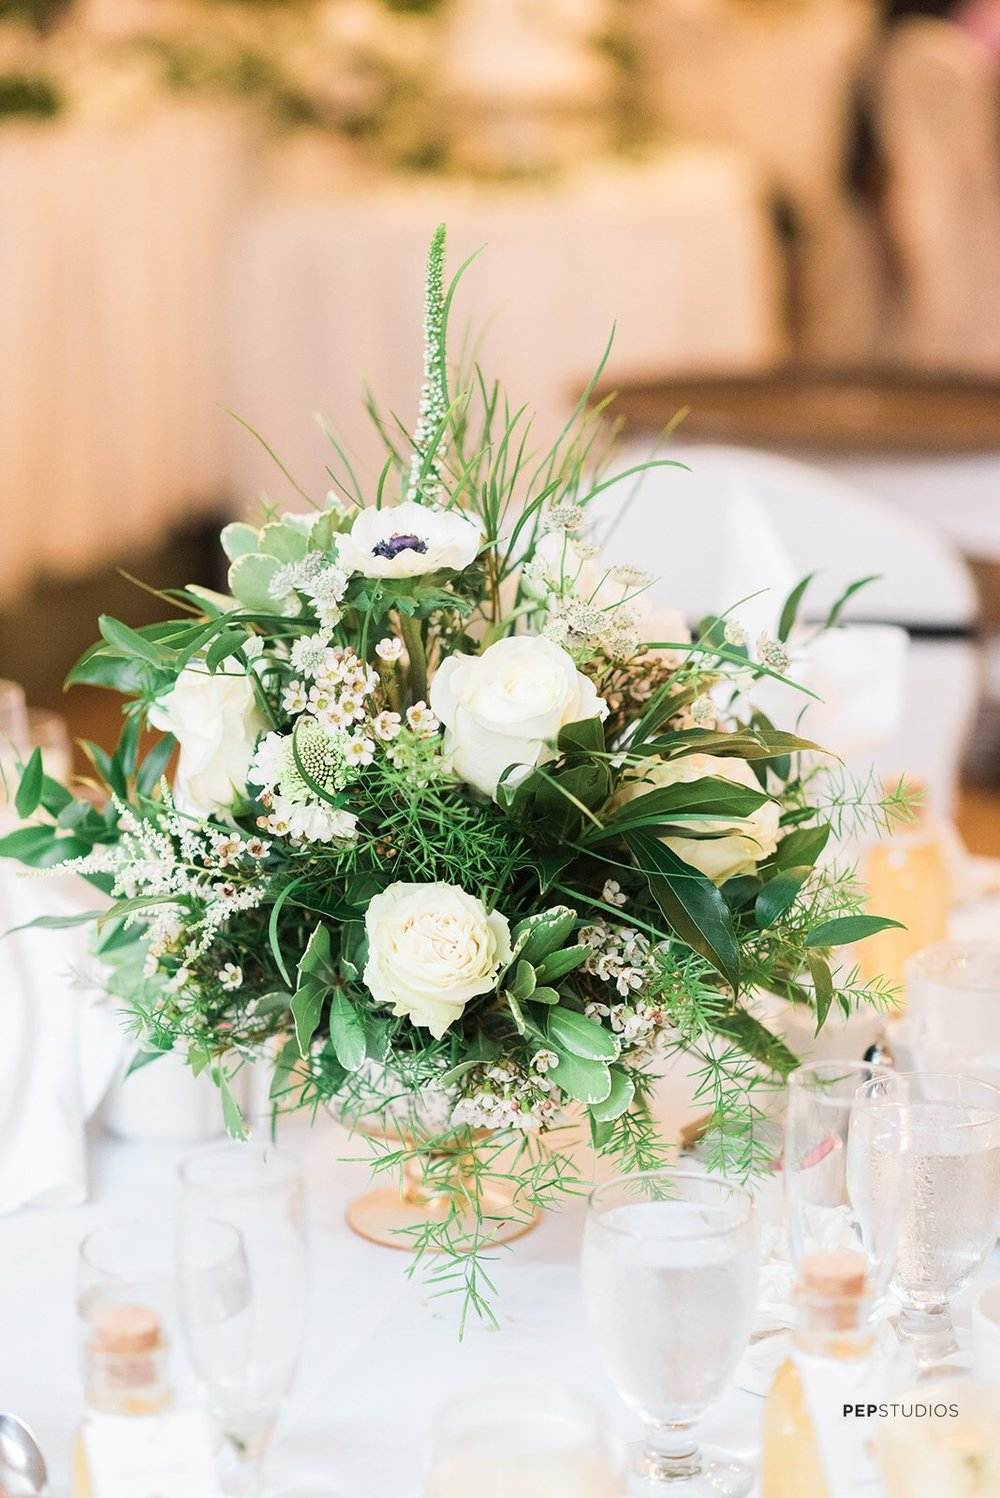 White and Green flower centrepiece